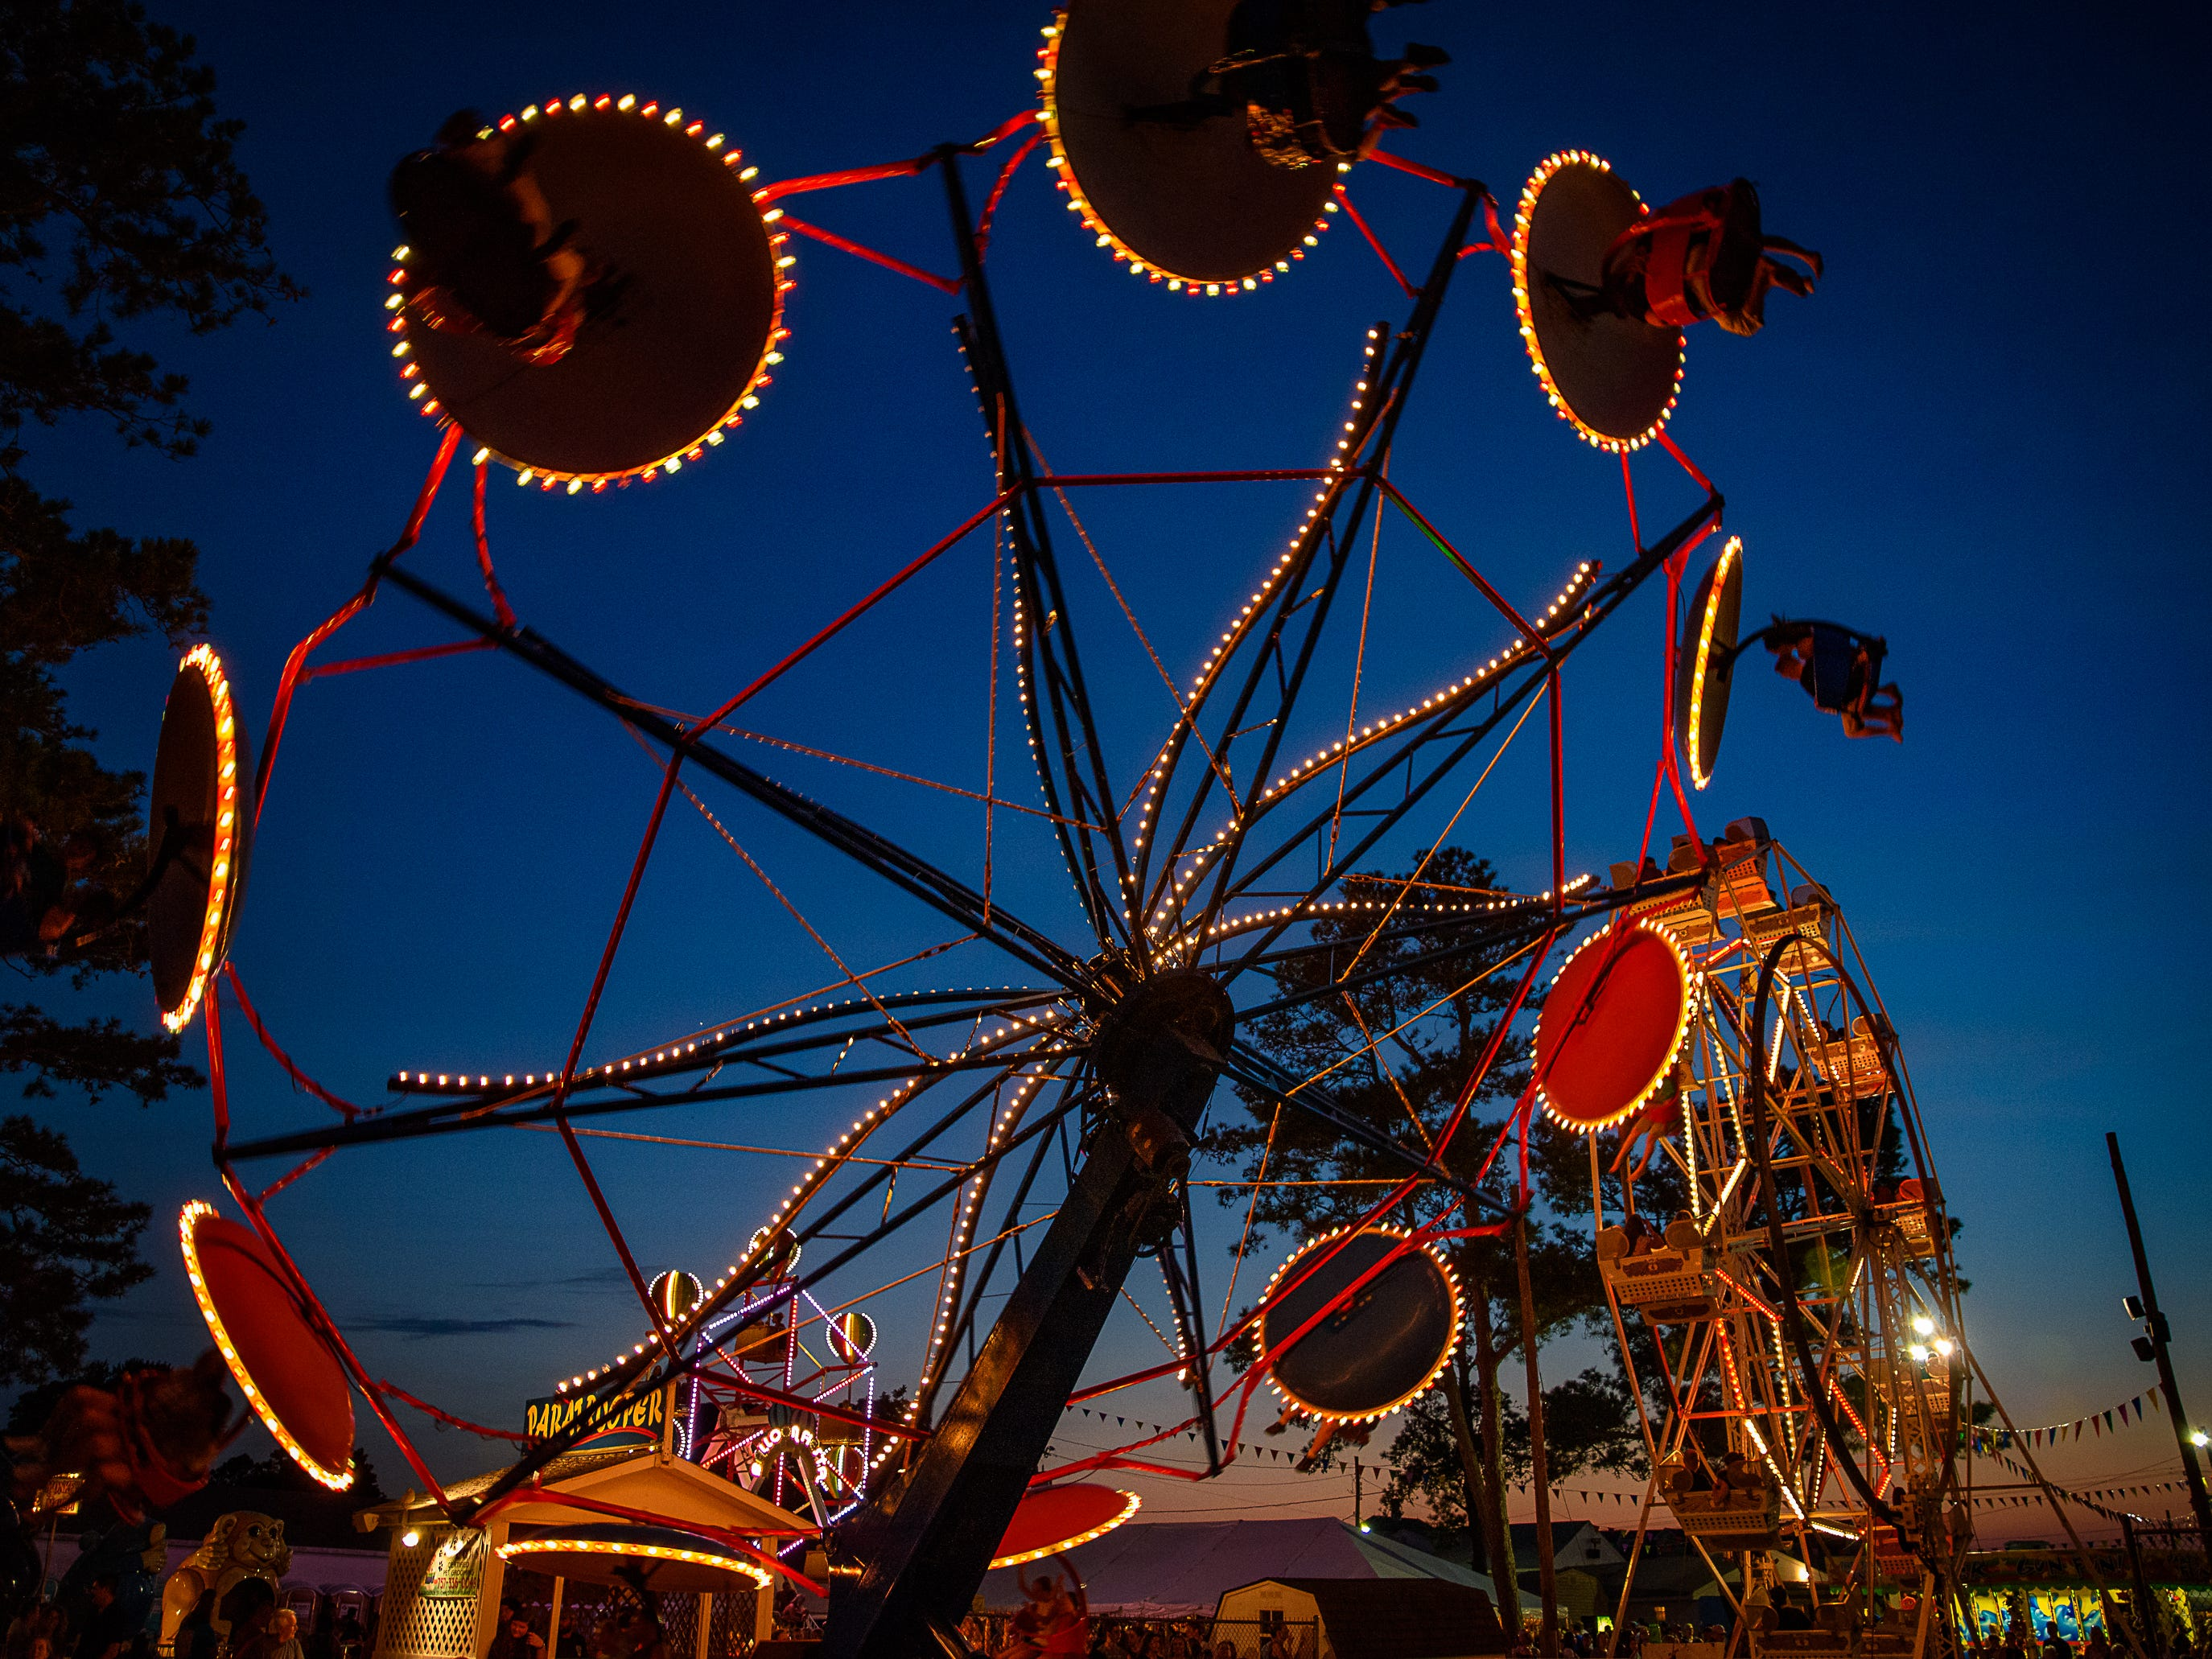 The Paratrooper and the Ferris Wheel. Two of the Fairs most popular attractions, against Chincoteague's night sky at the Chincoteague Fireman's Carnival.